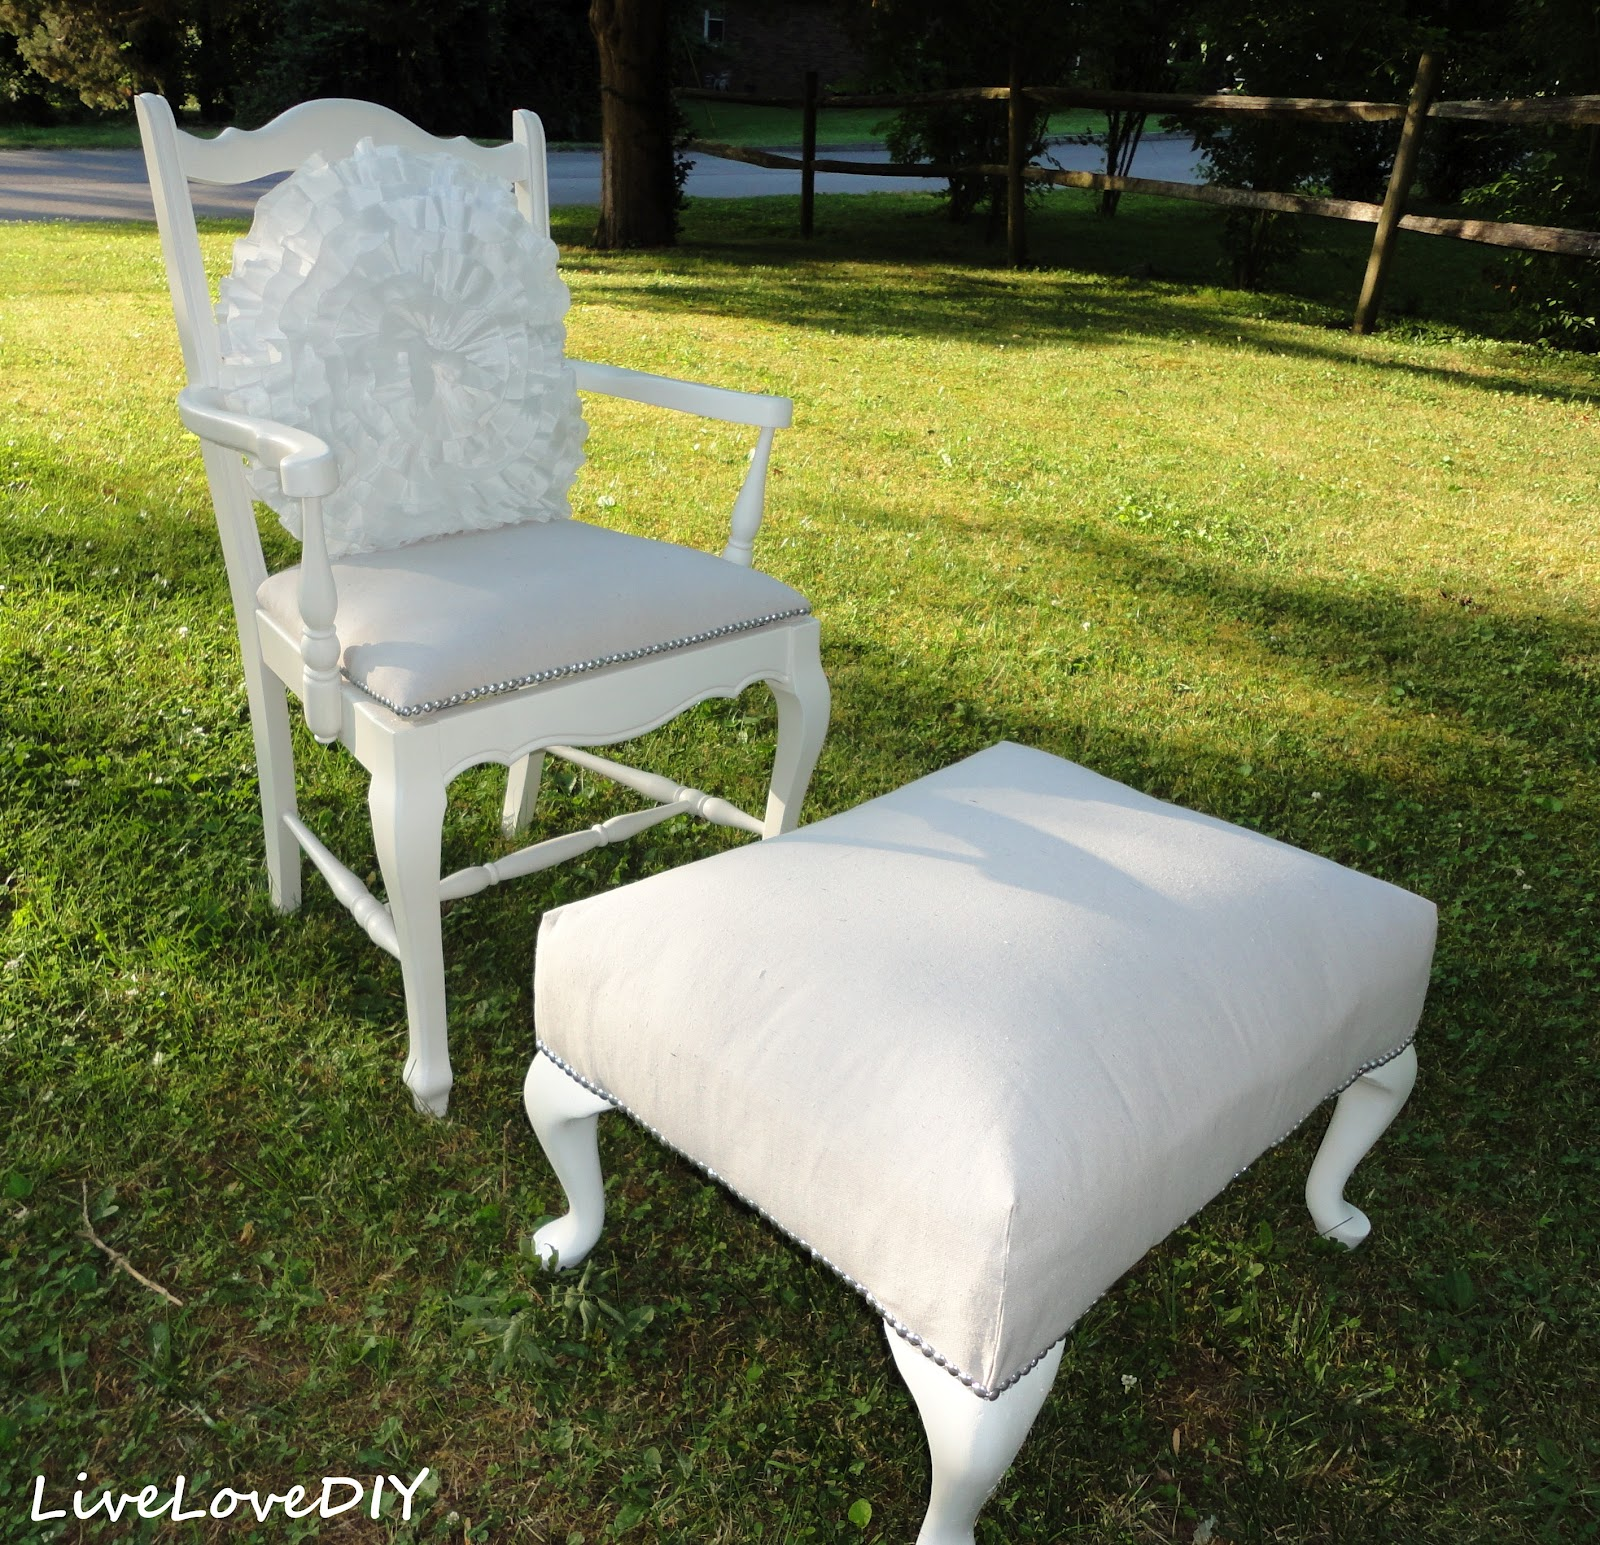 LiveLoveDIY Reupholster a Chair with a Drop Cloth